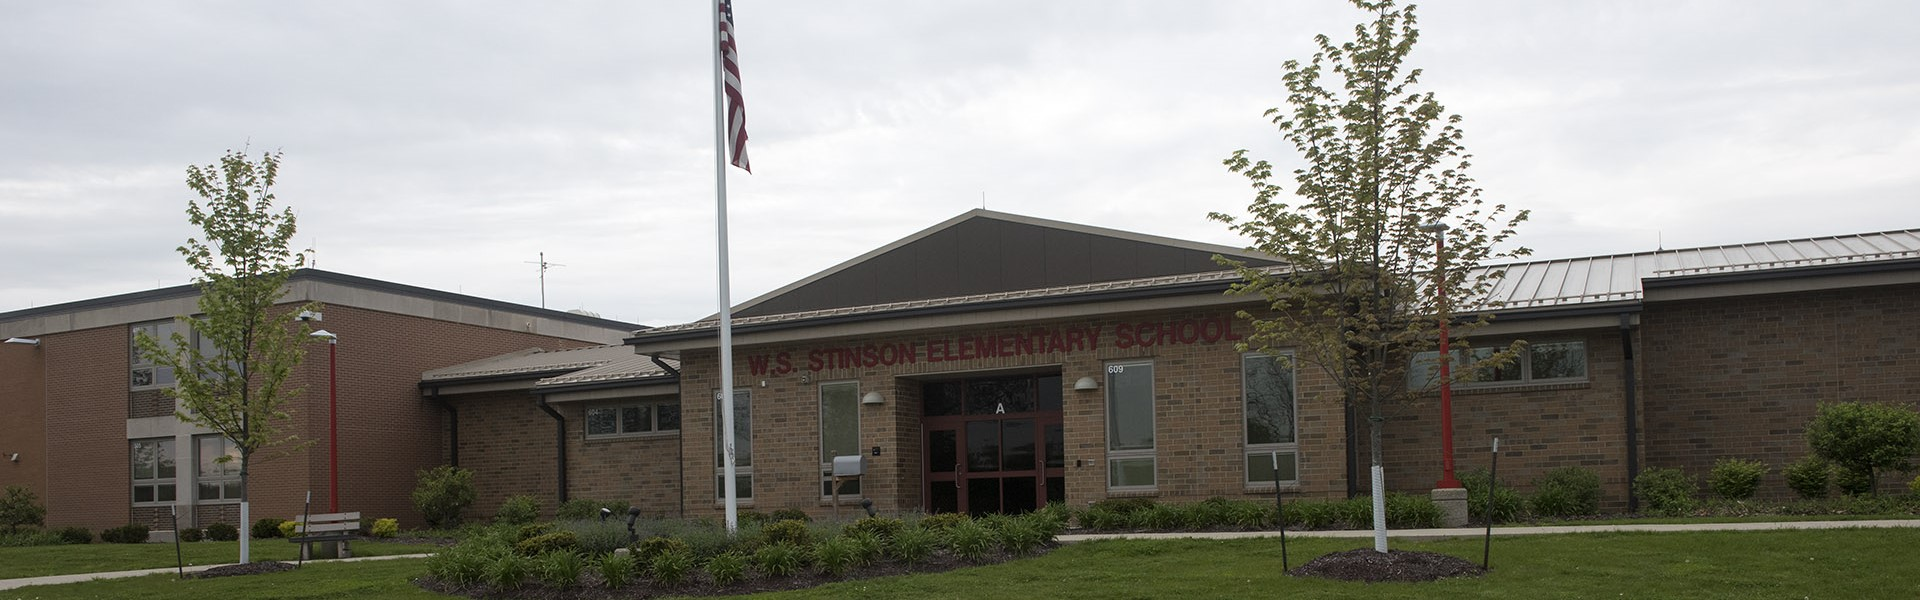 Photograph of W.S. Stinson Elementary